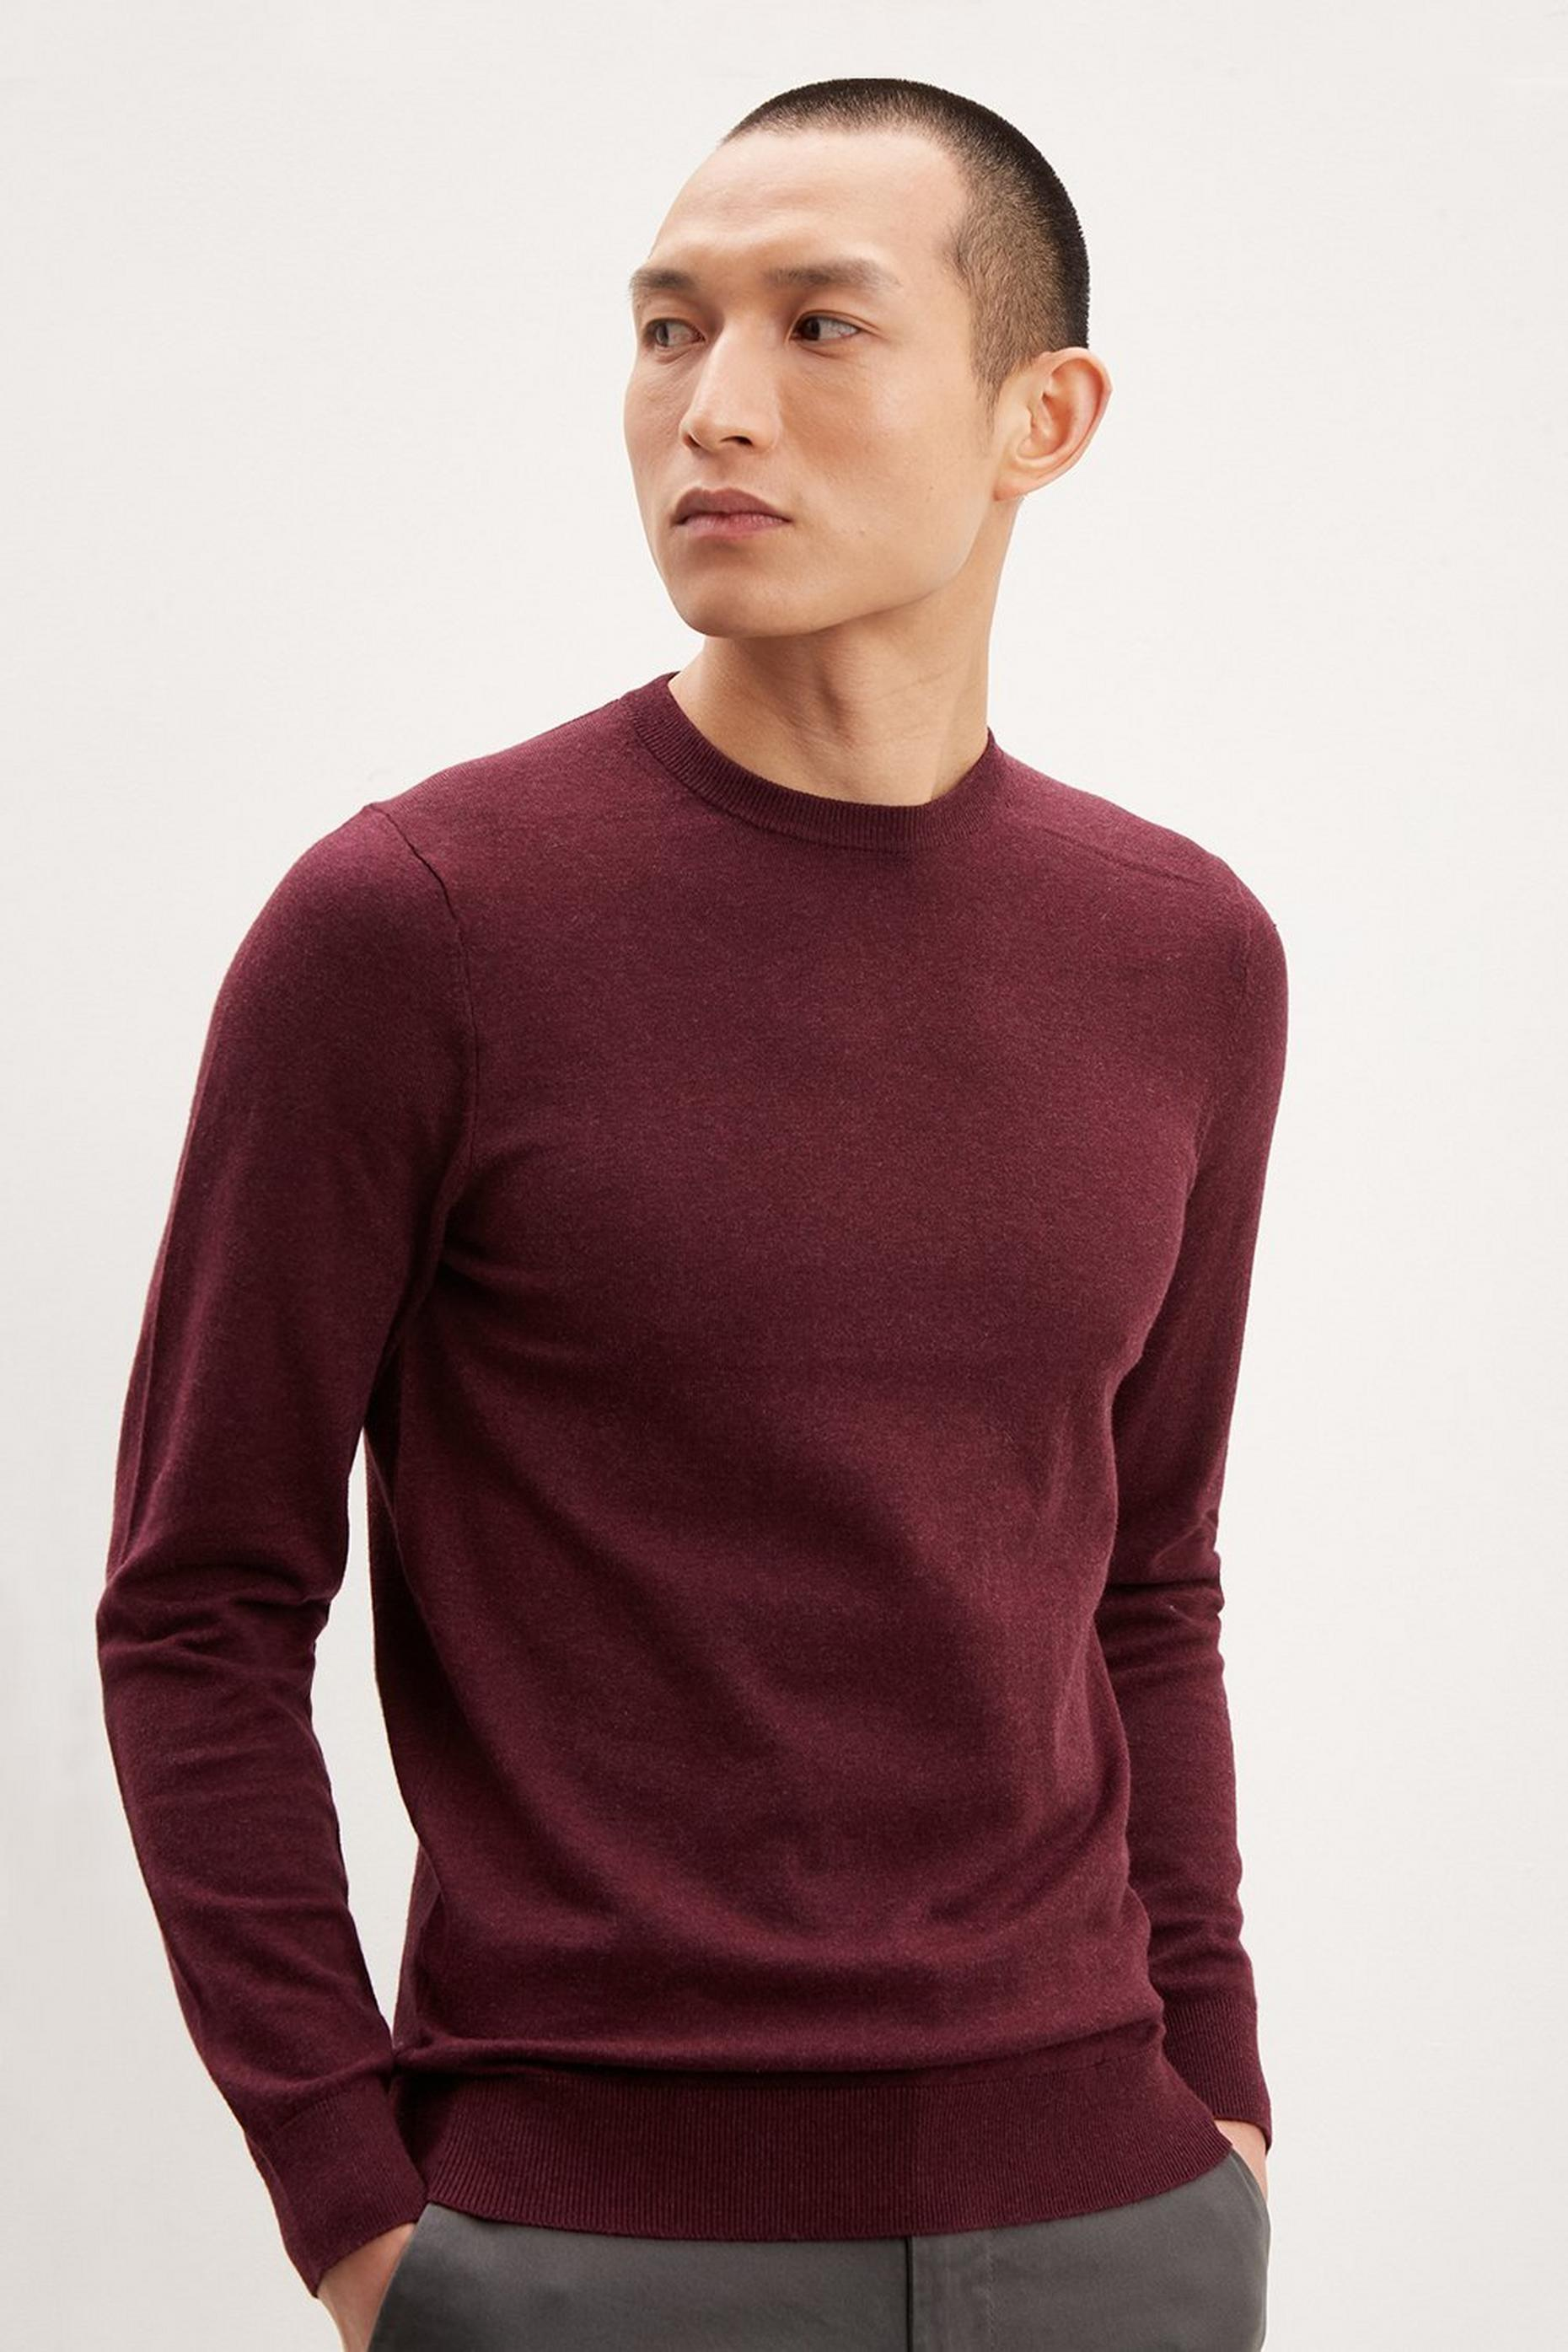 Burgundy Crew Neck Jumper with Organic Cotton